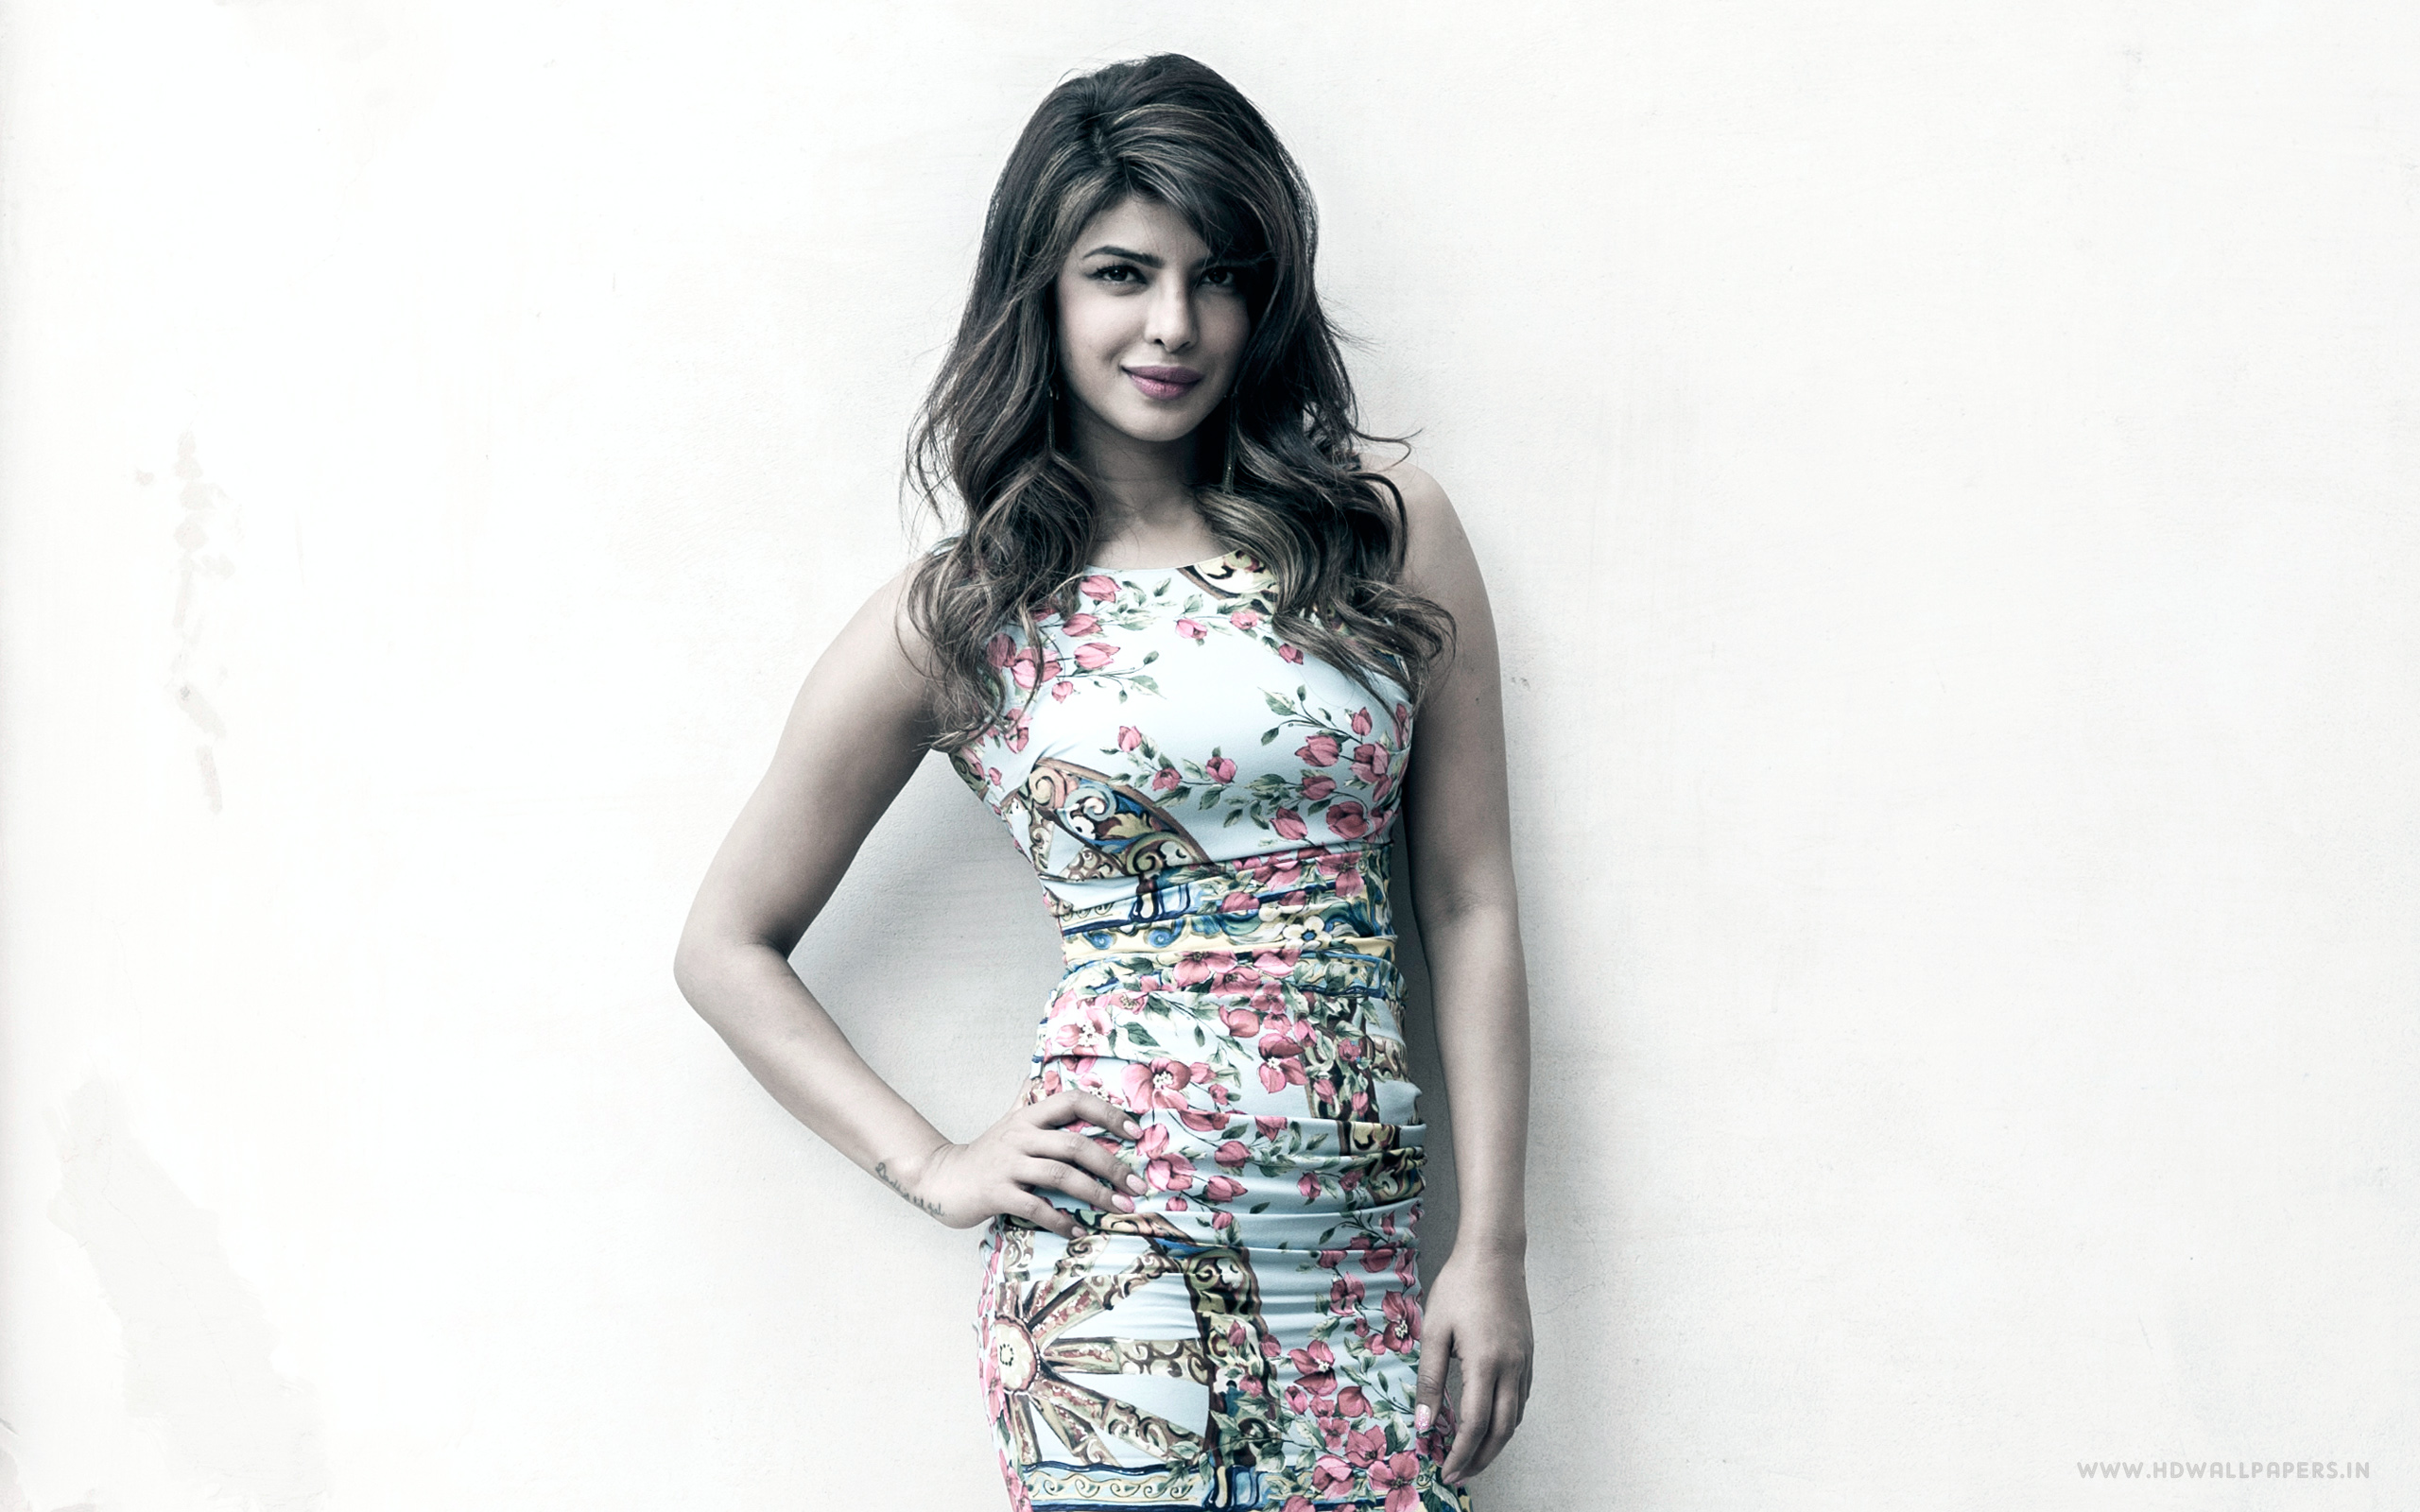 HD Wallpapers Priyanka Chopra 2015